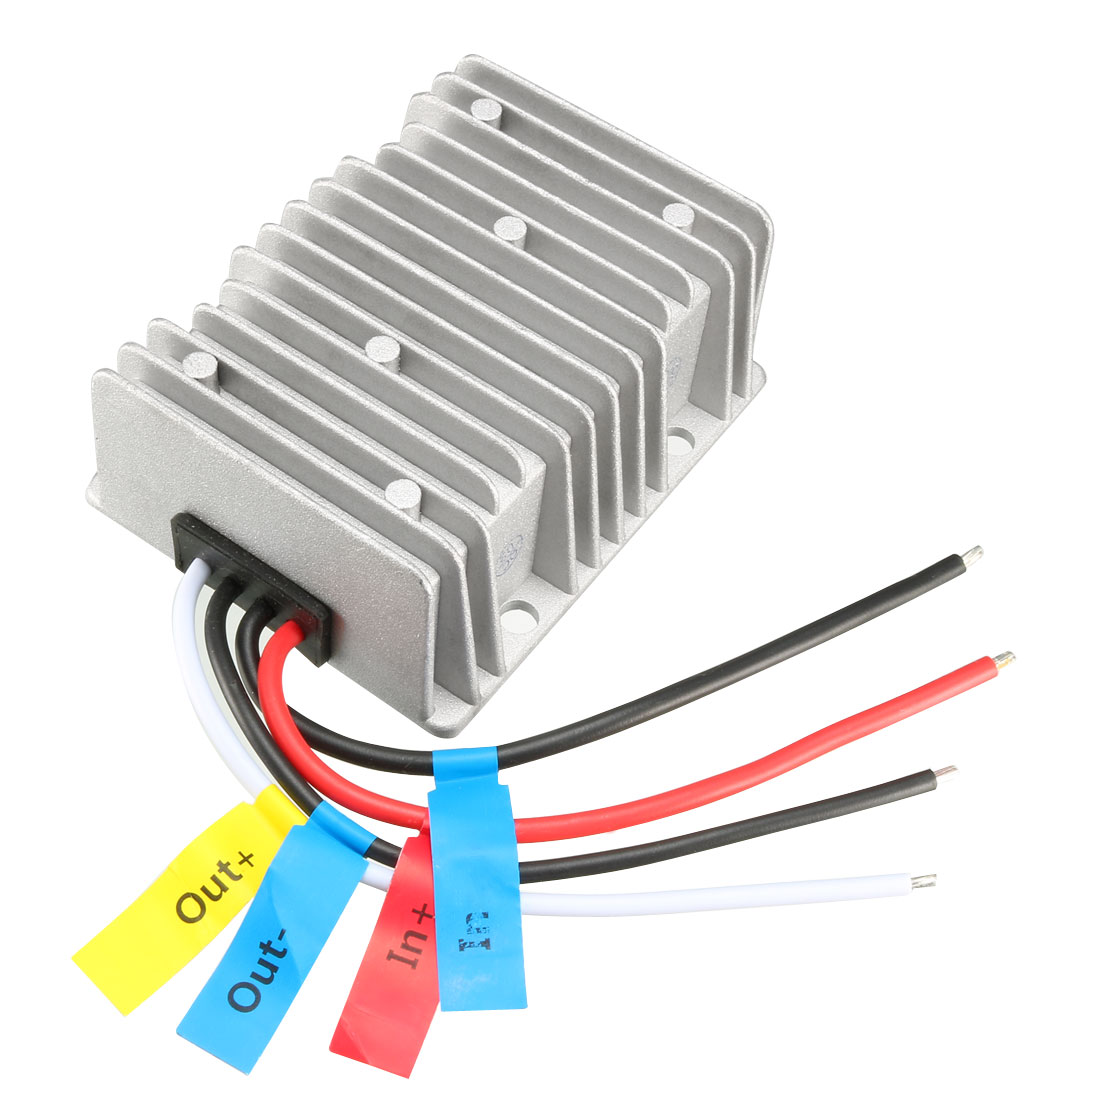 uxcell Voltage Converter Regulator DC/DC DC 12V Step-Up to DC 19V 15A 285W Power Boost Transformer Waterproof